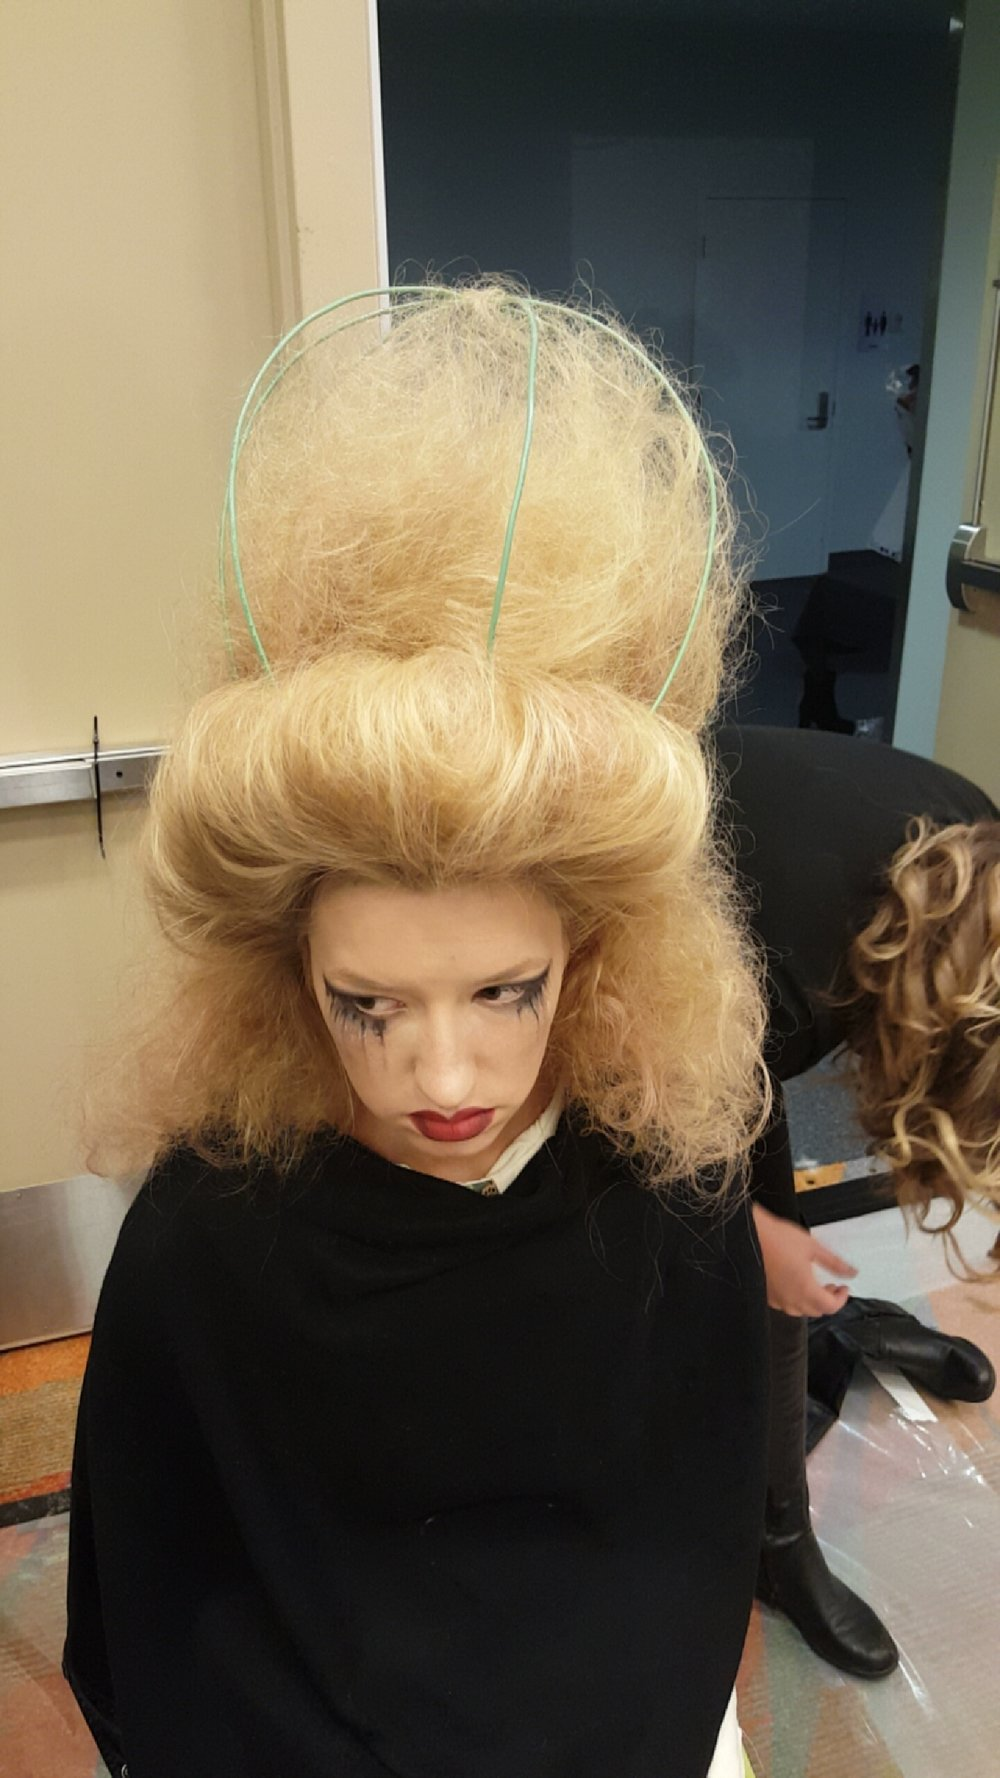 Model pre wardrobe with completed hair and make up